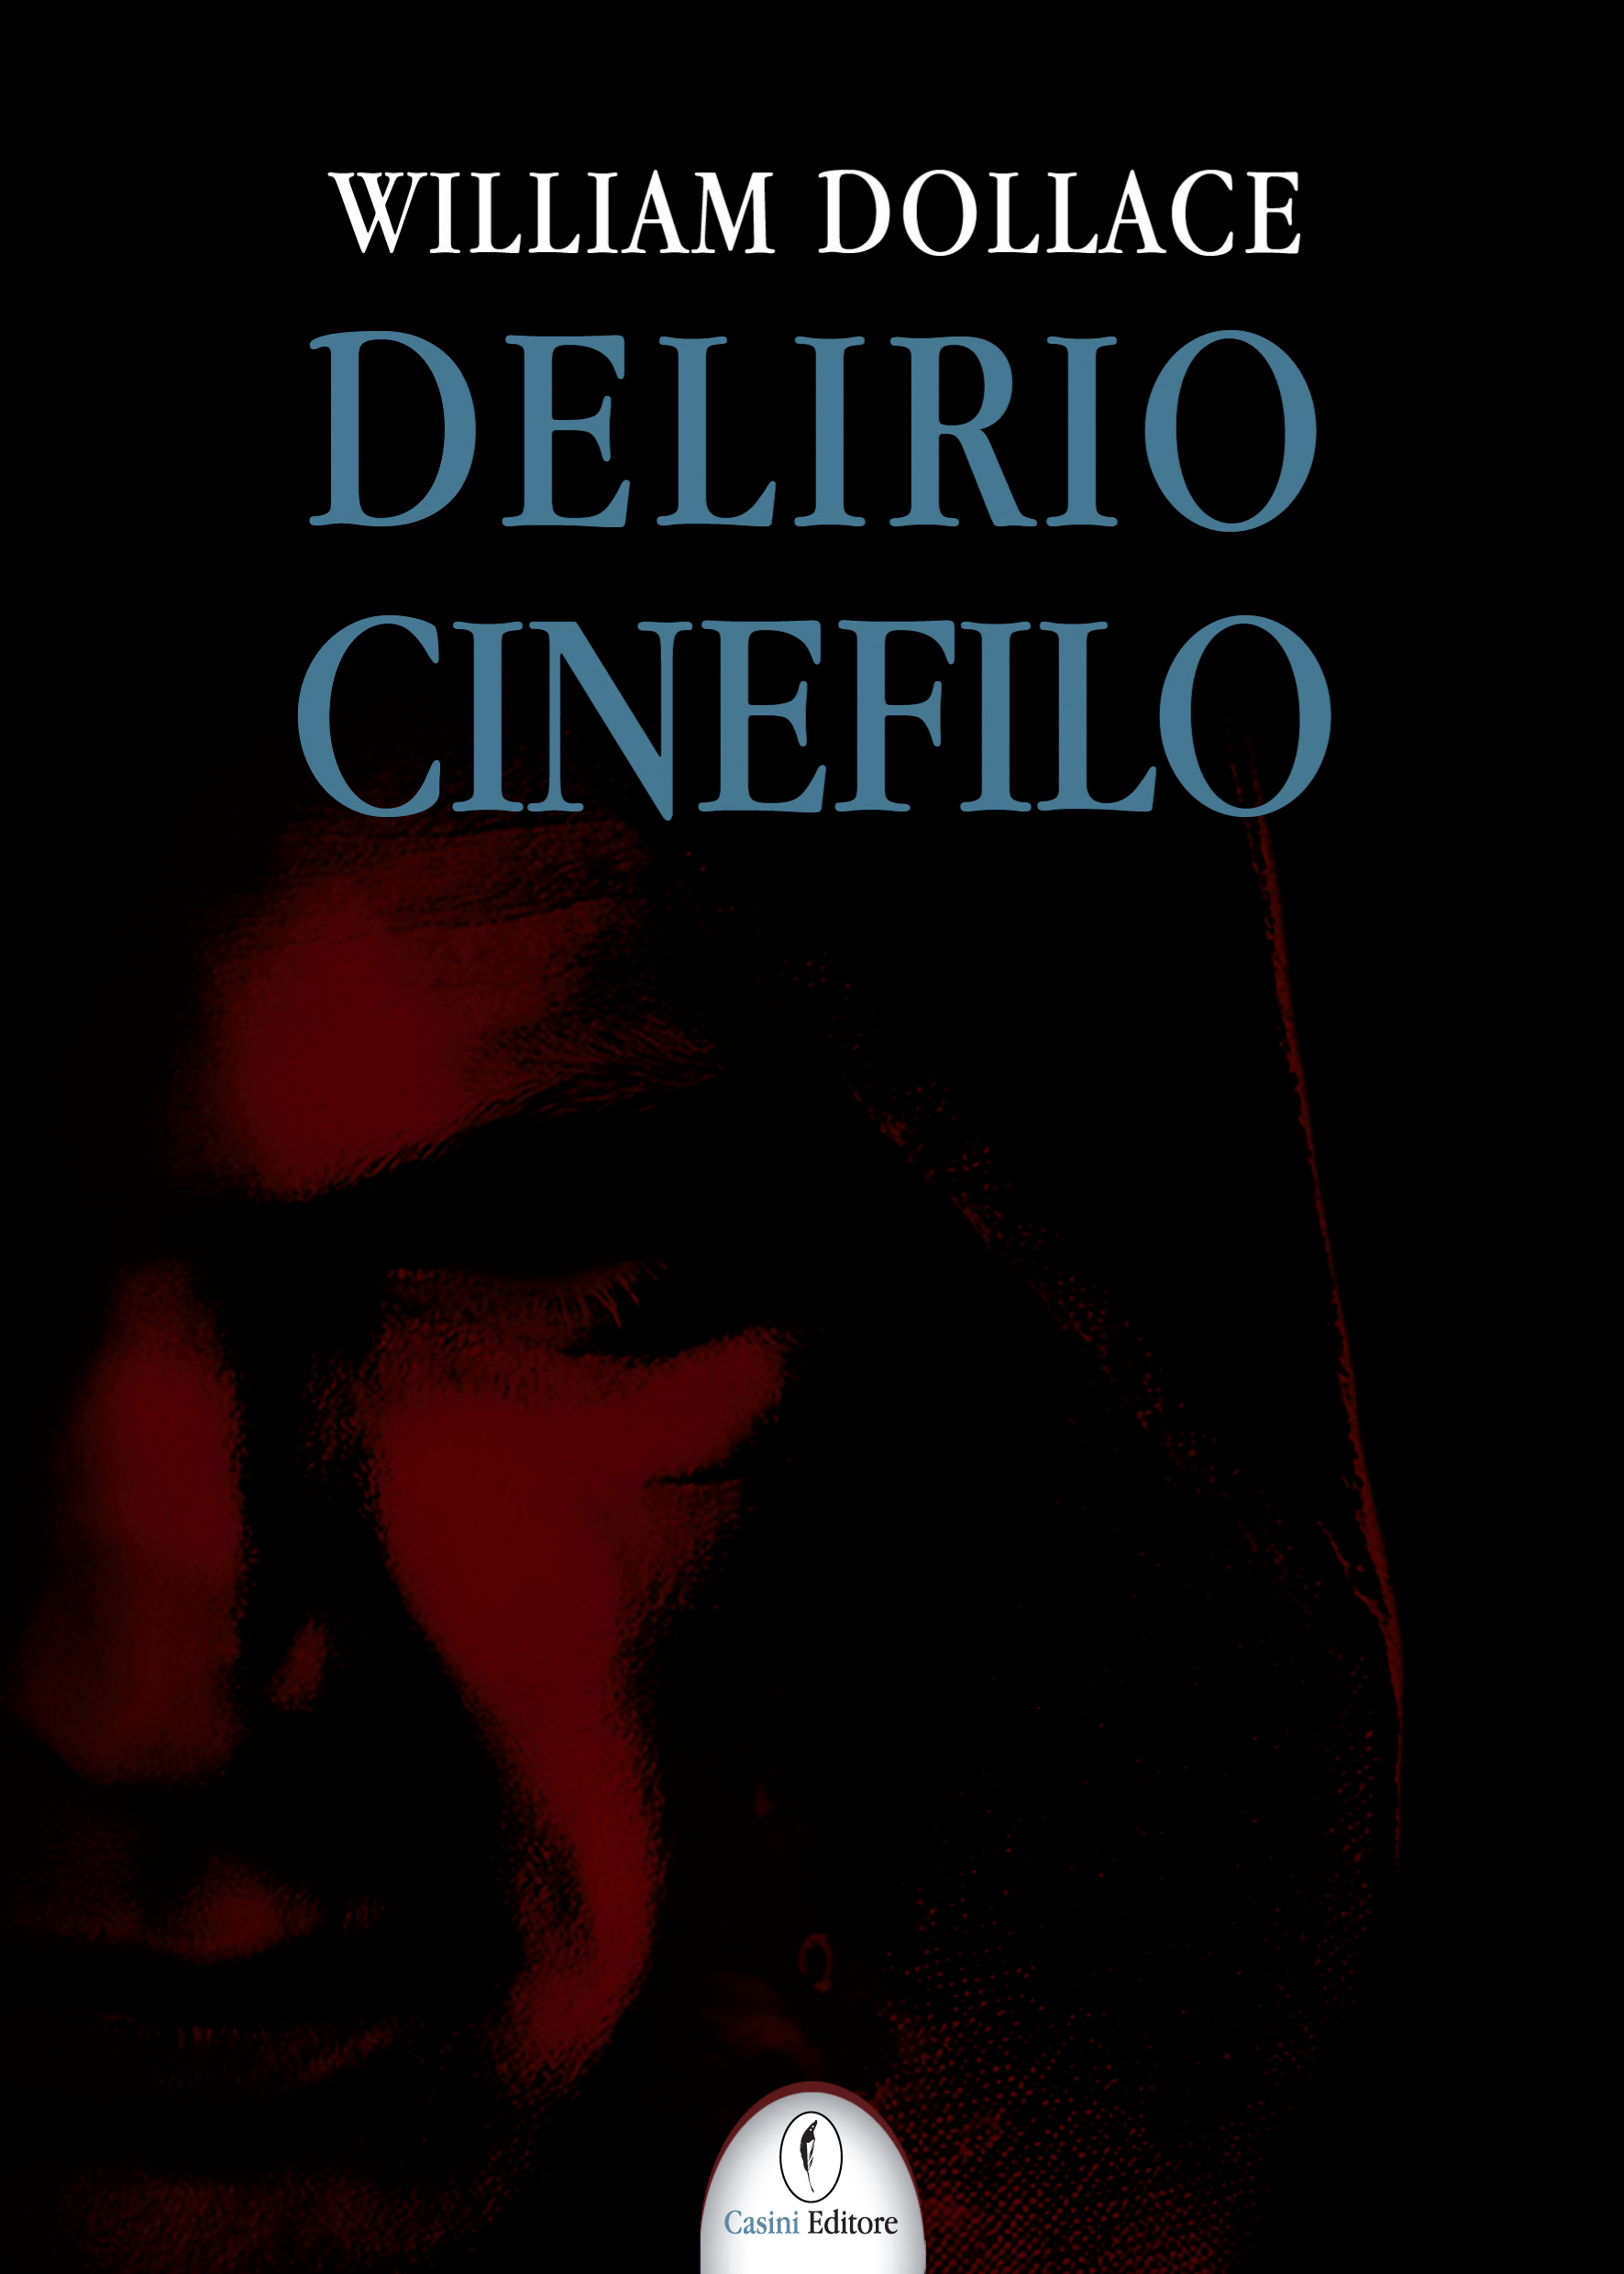 delirio cinefilo